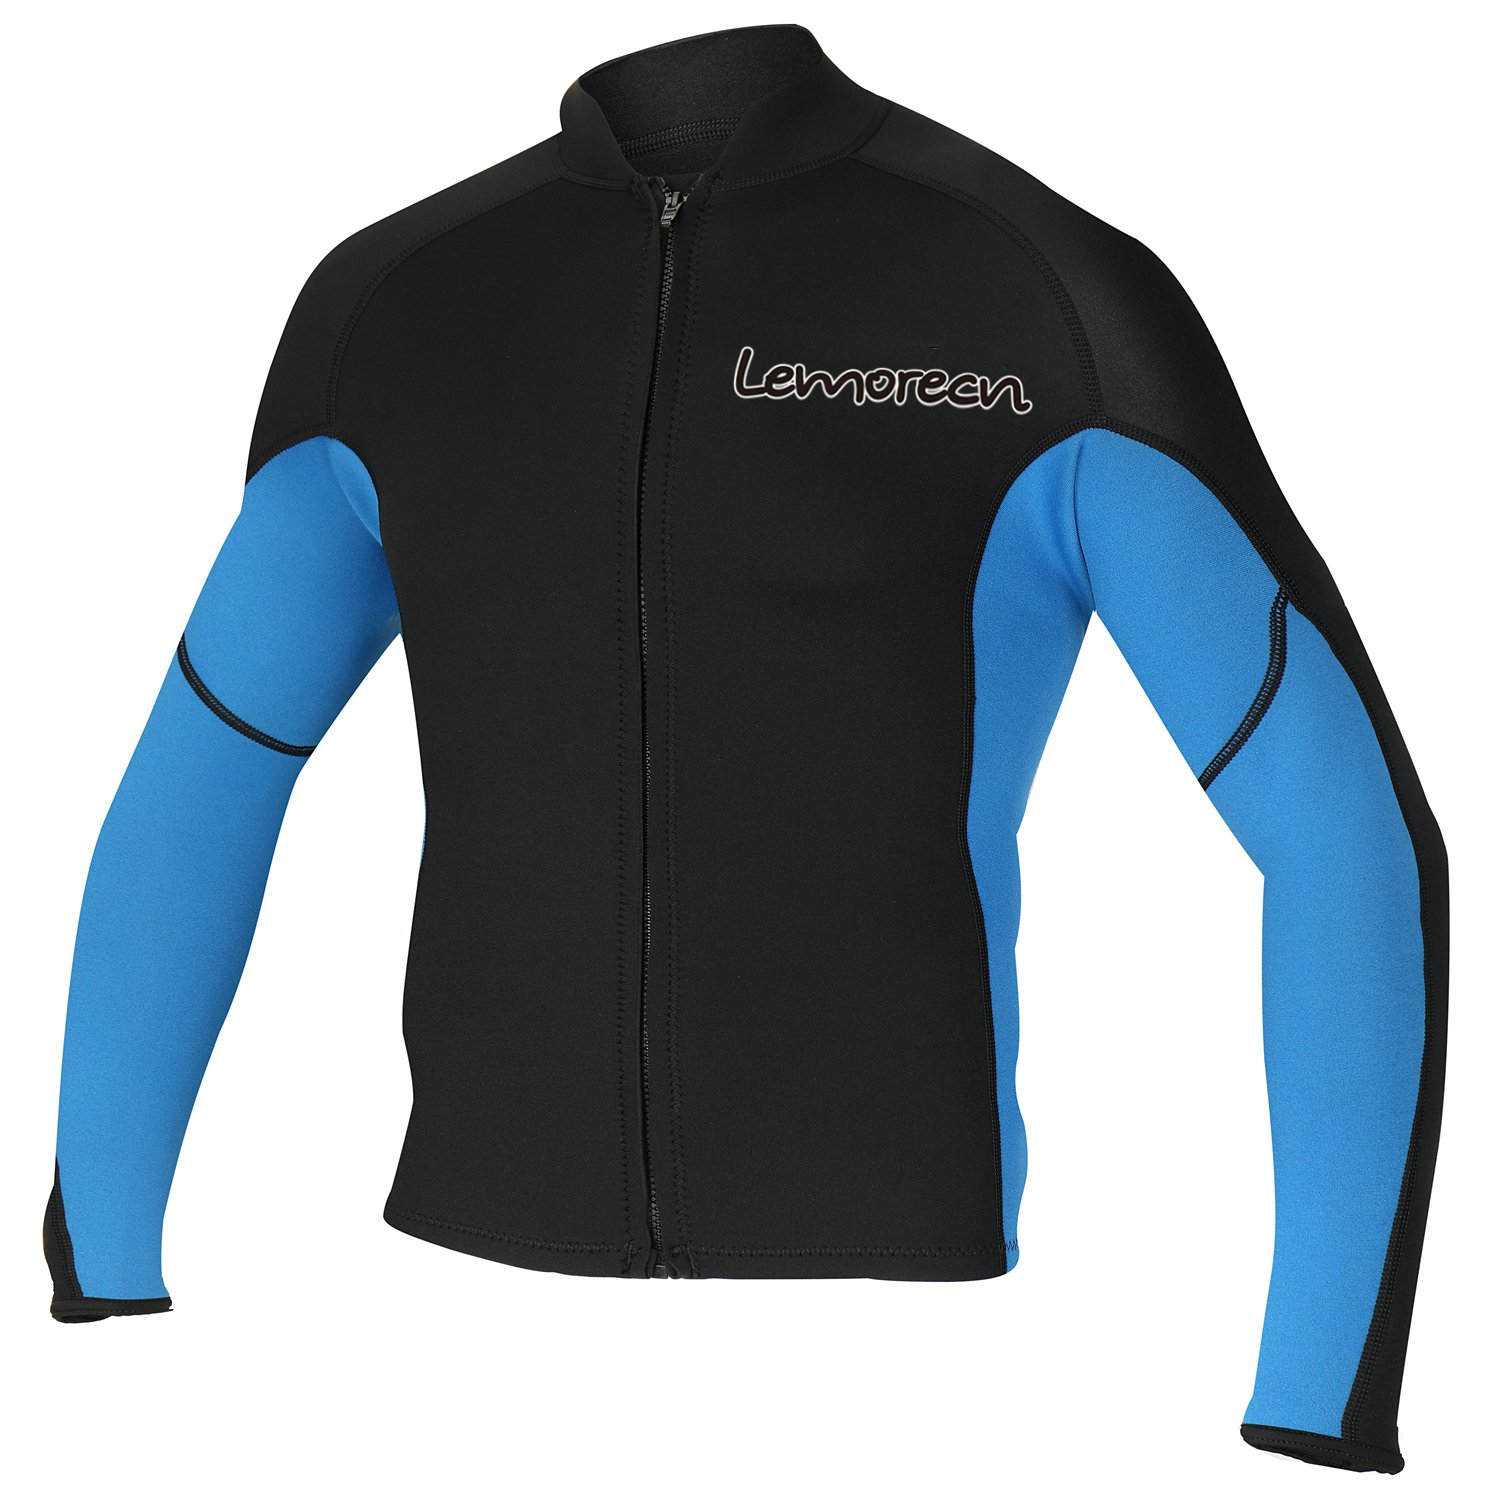 Lemorecn Men's 2mm Wetsuits Jacket Long Sleeve Neoprene Wetsuits Top (2021blue3XL) by Lemorecn